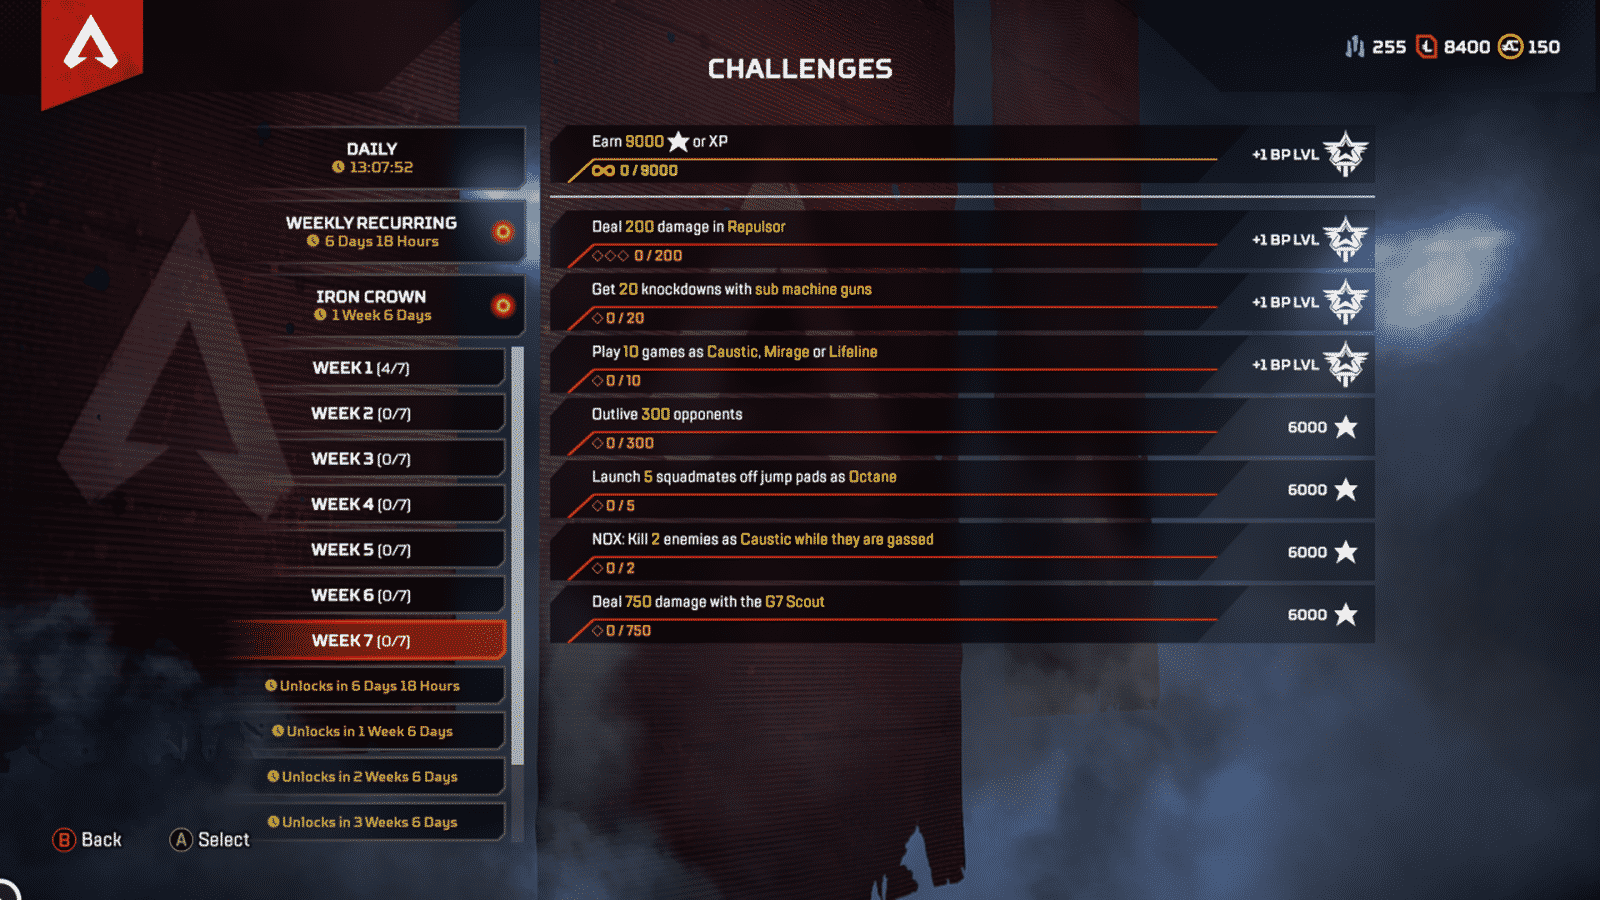 Week 7 challenges for Apex Legends task